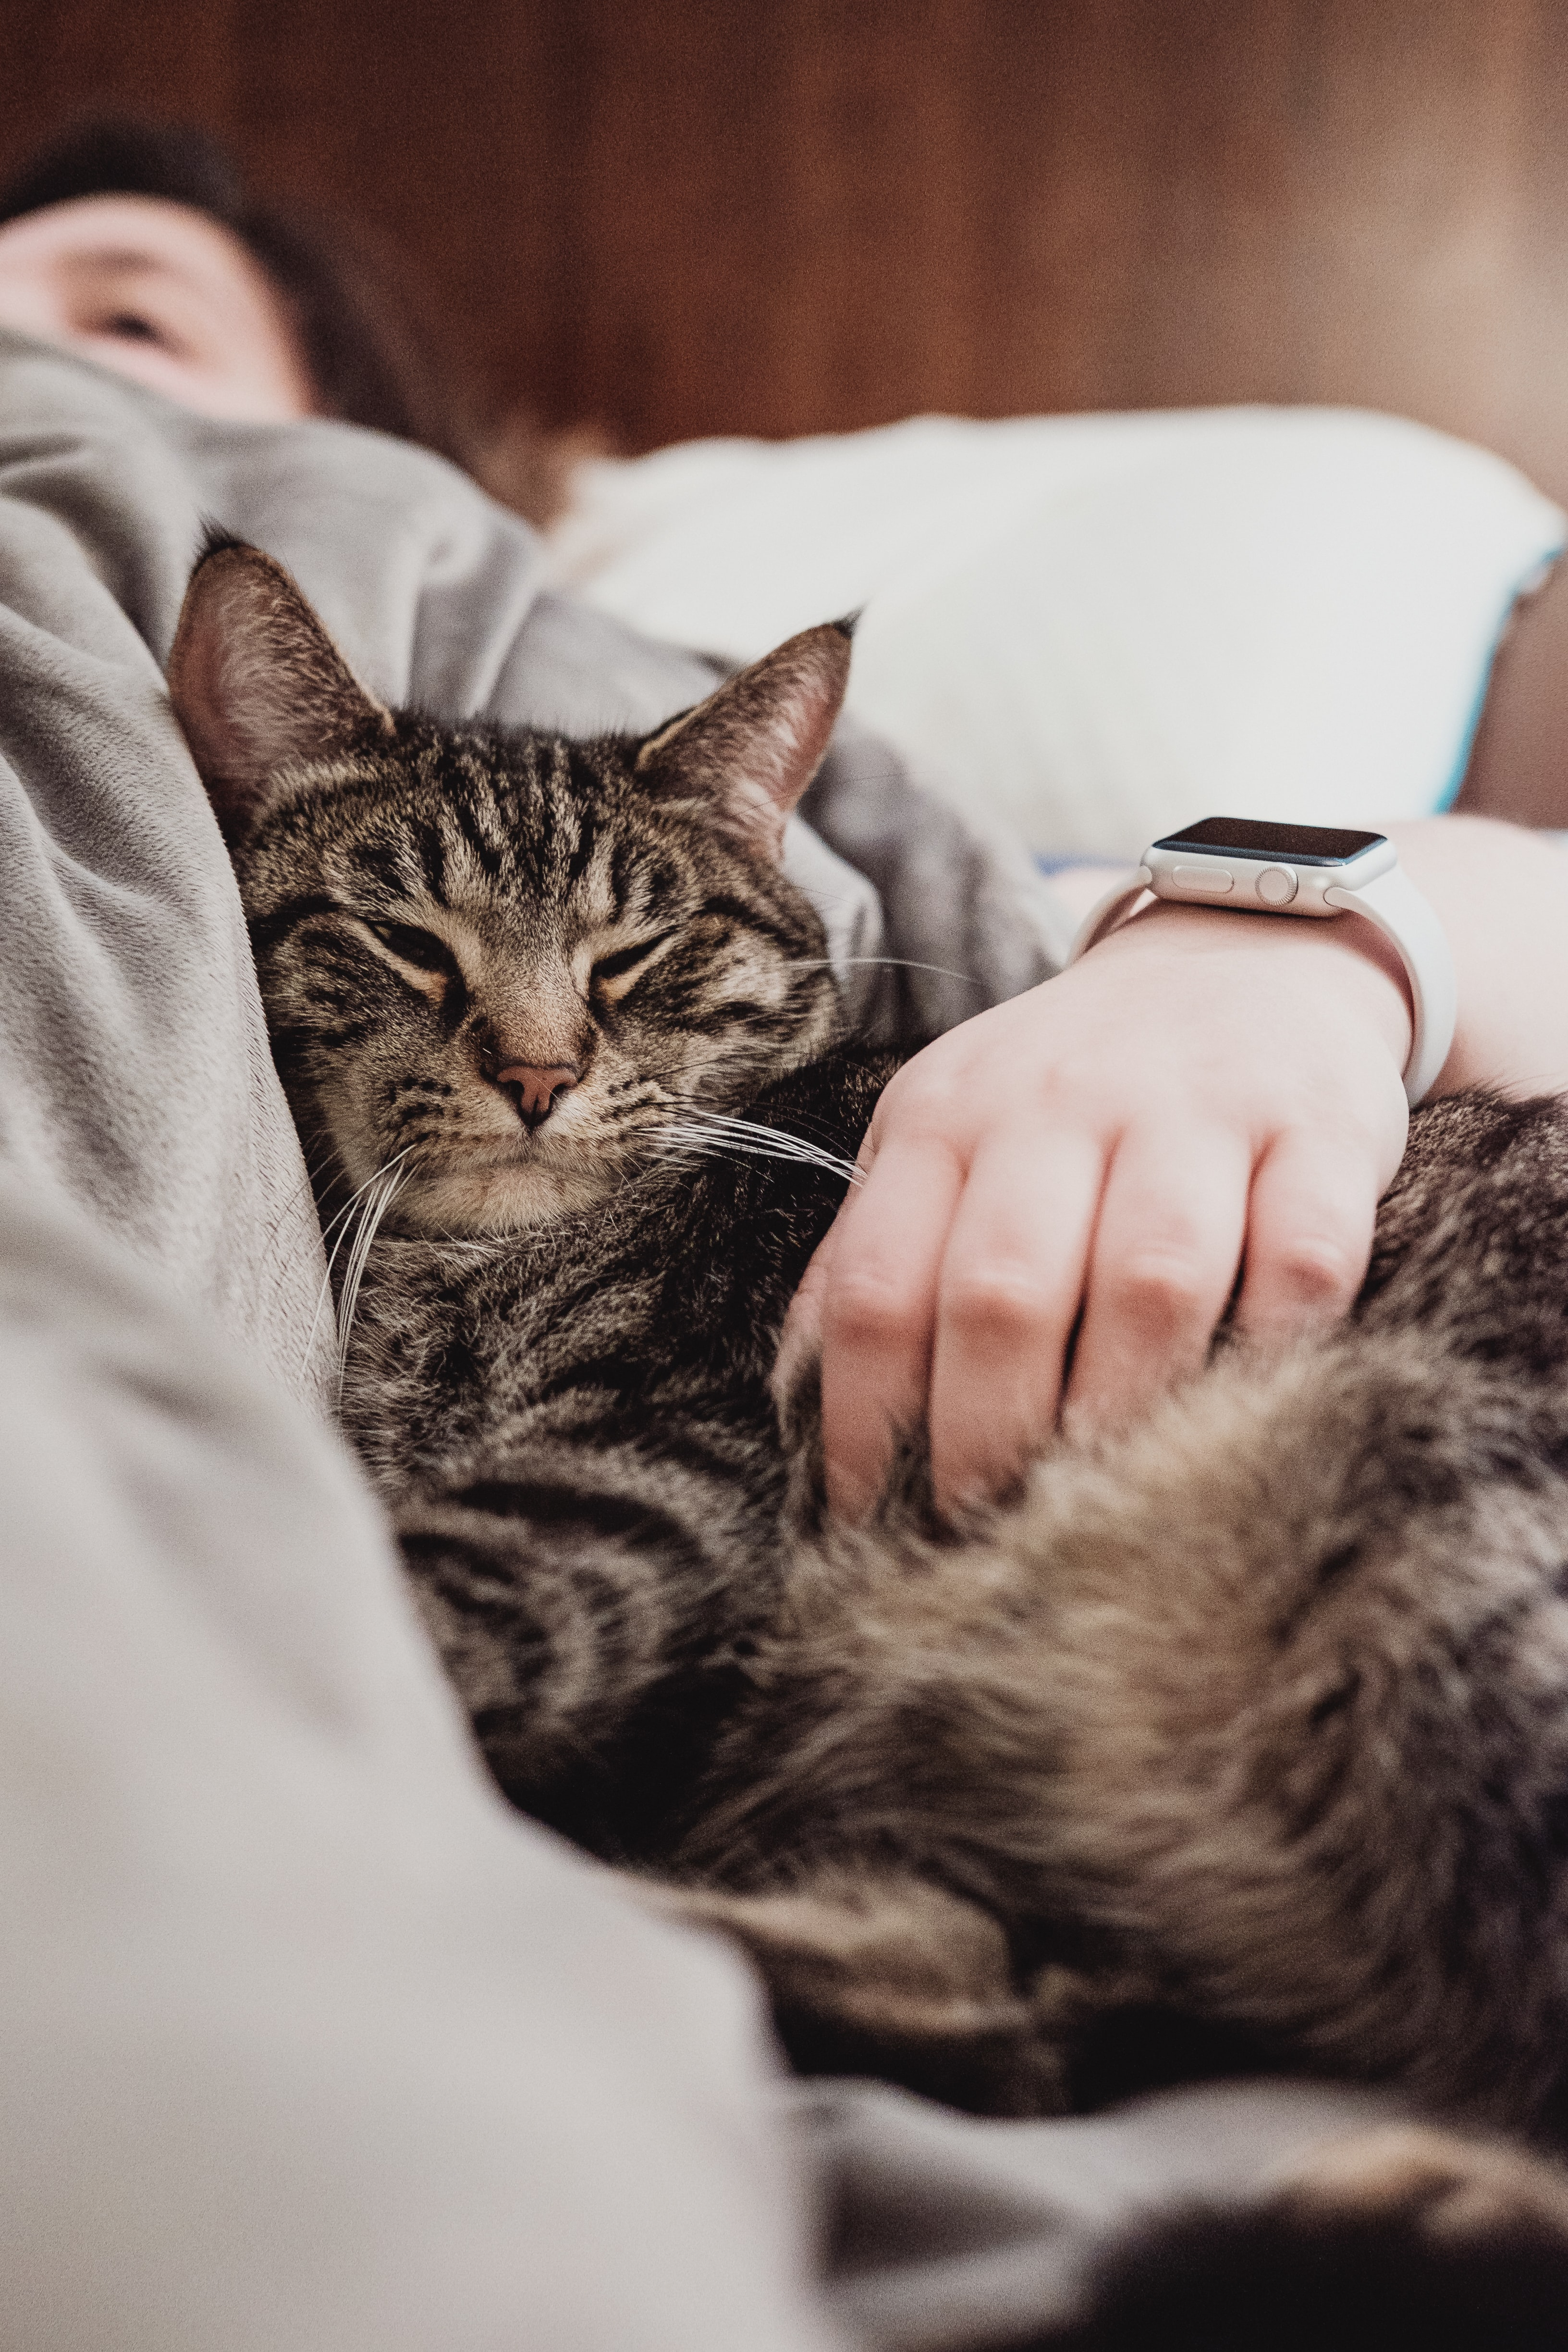 A tabby cat snuggling to a person lying in bed